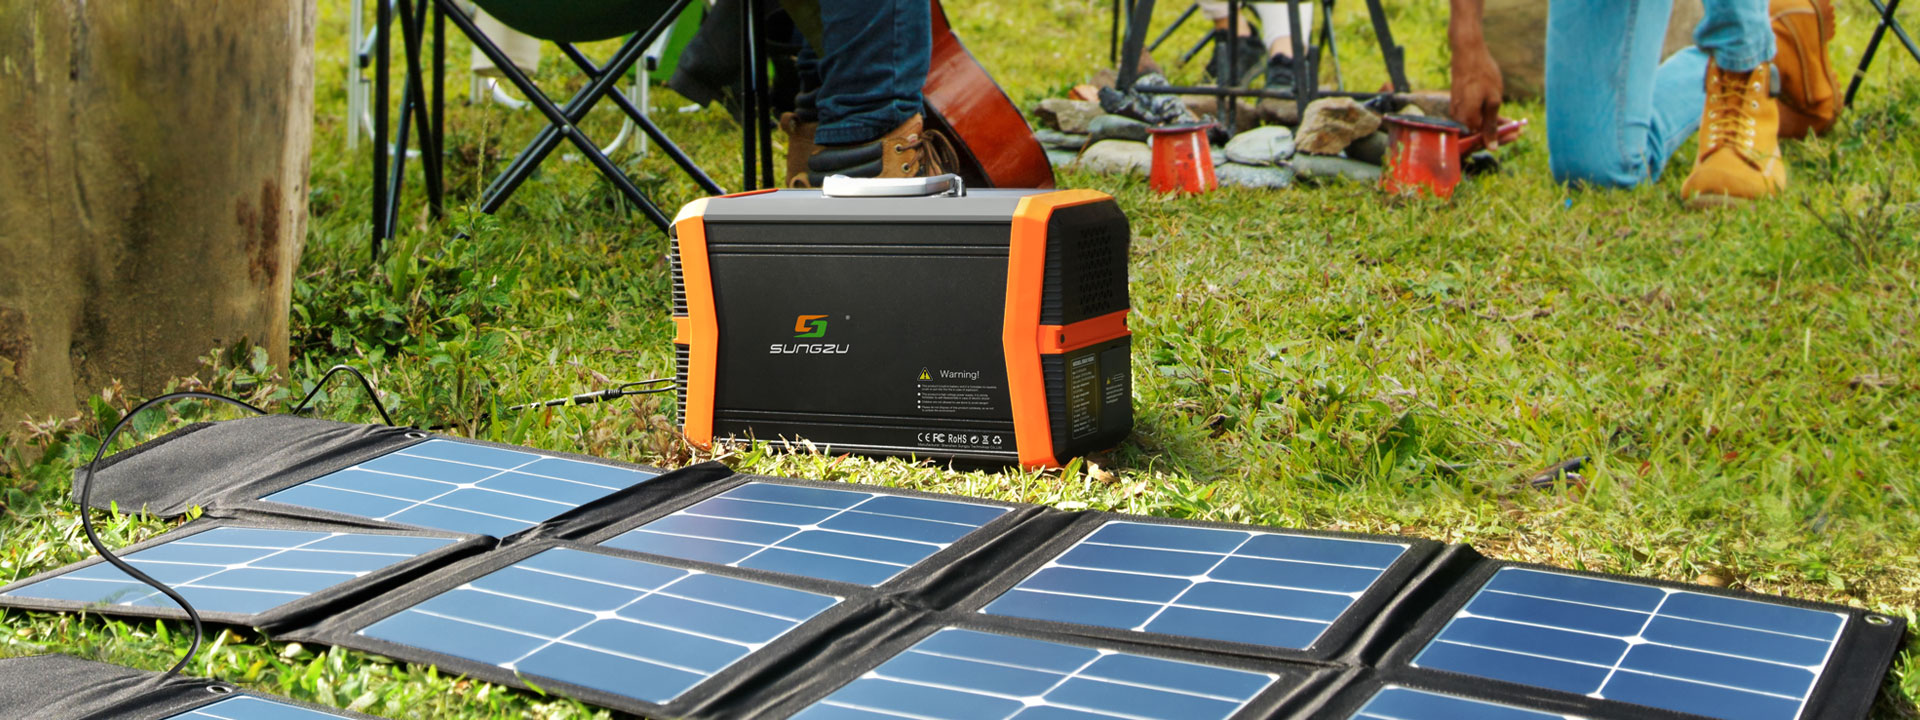 1000W solar charger storage bank